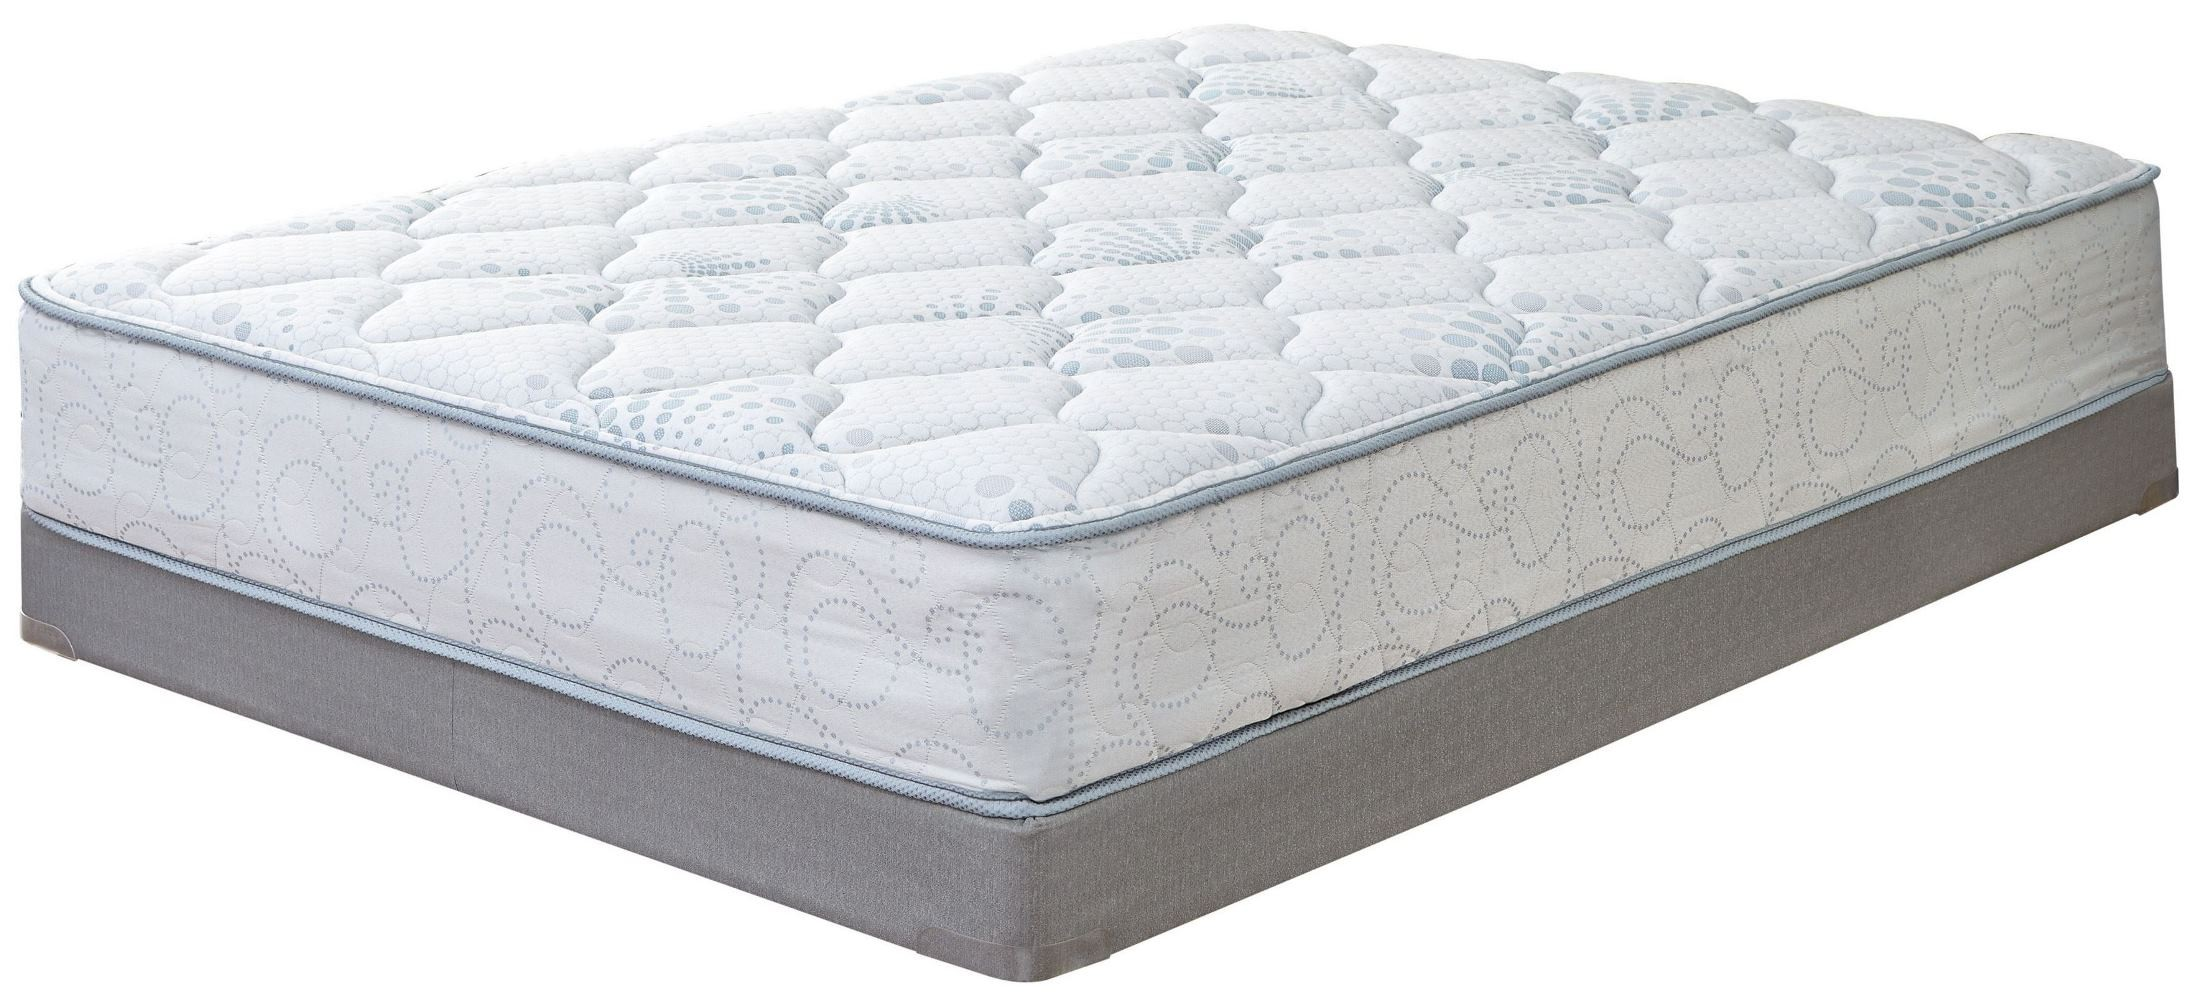 kids bedding innerspring full size mattress with foundation from ashley coleman furniture. Black Bedroom Furniture Sets. Home Design Ideas